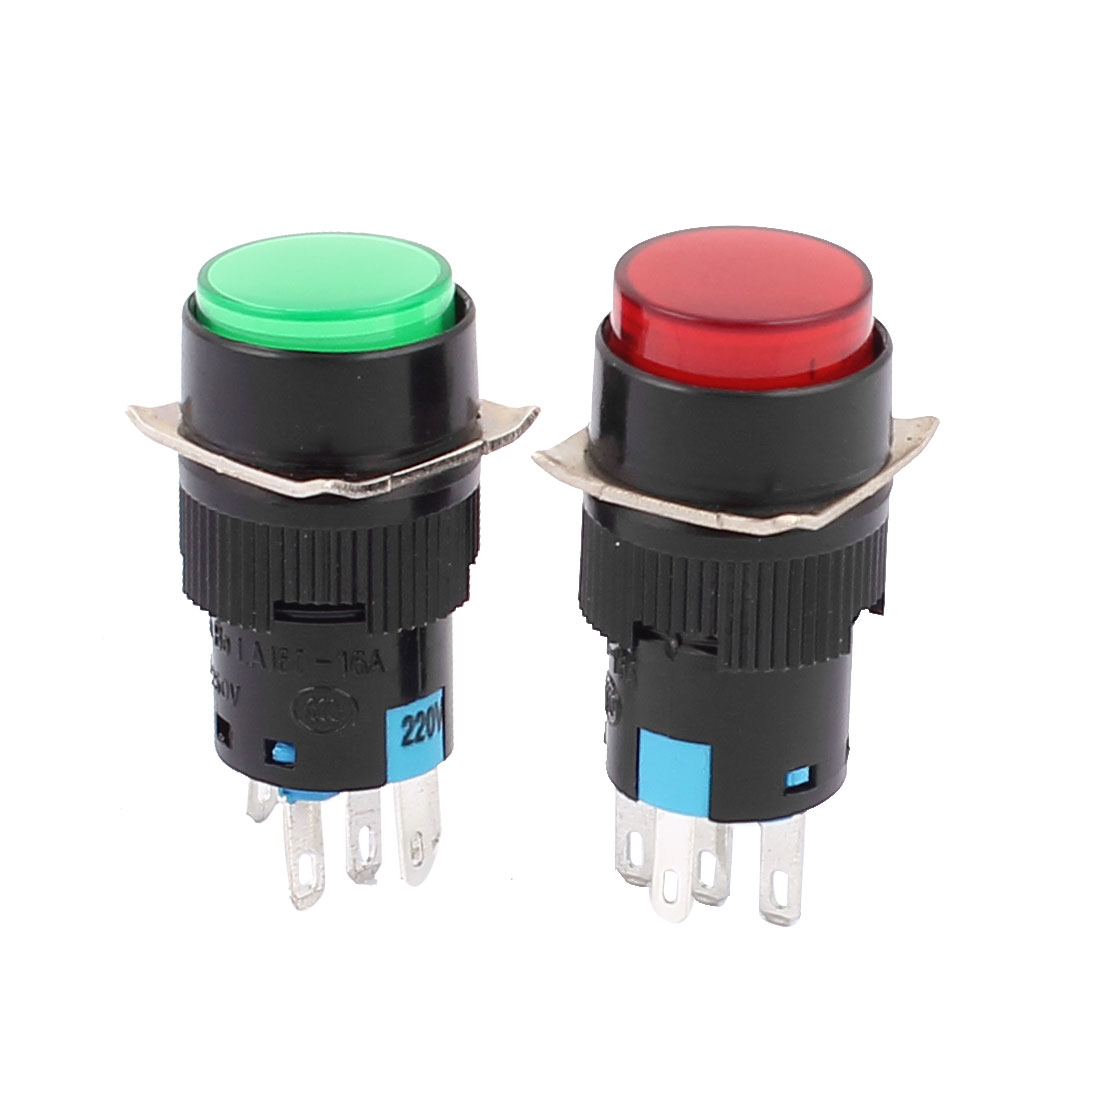 AC 250V 5A Panel Mount Self-locking Push Button Switch Controller Starter 2pcs